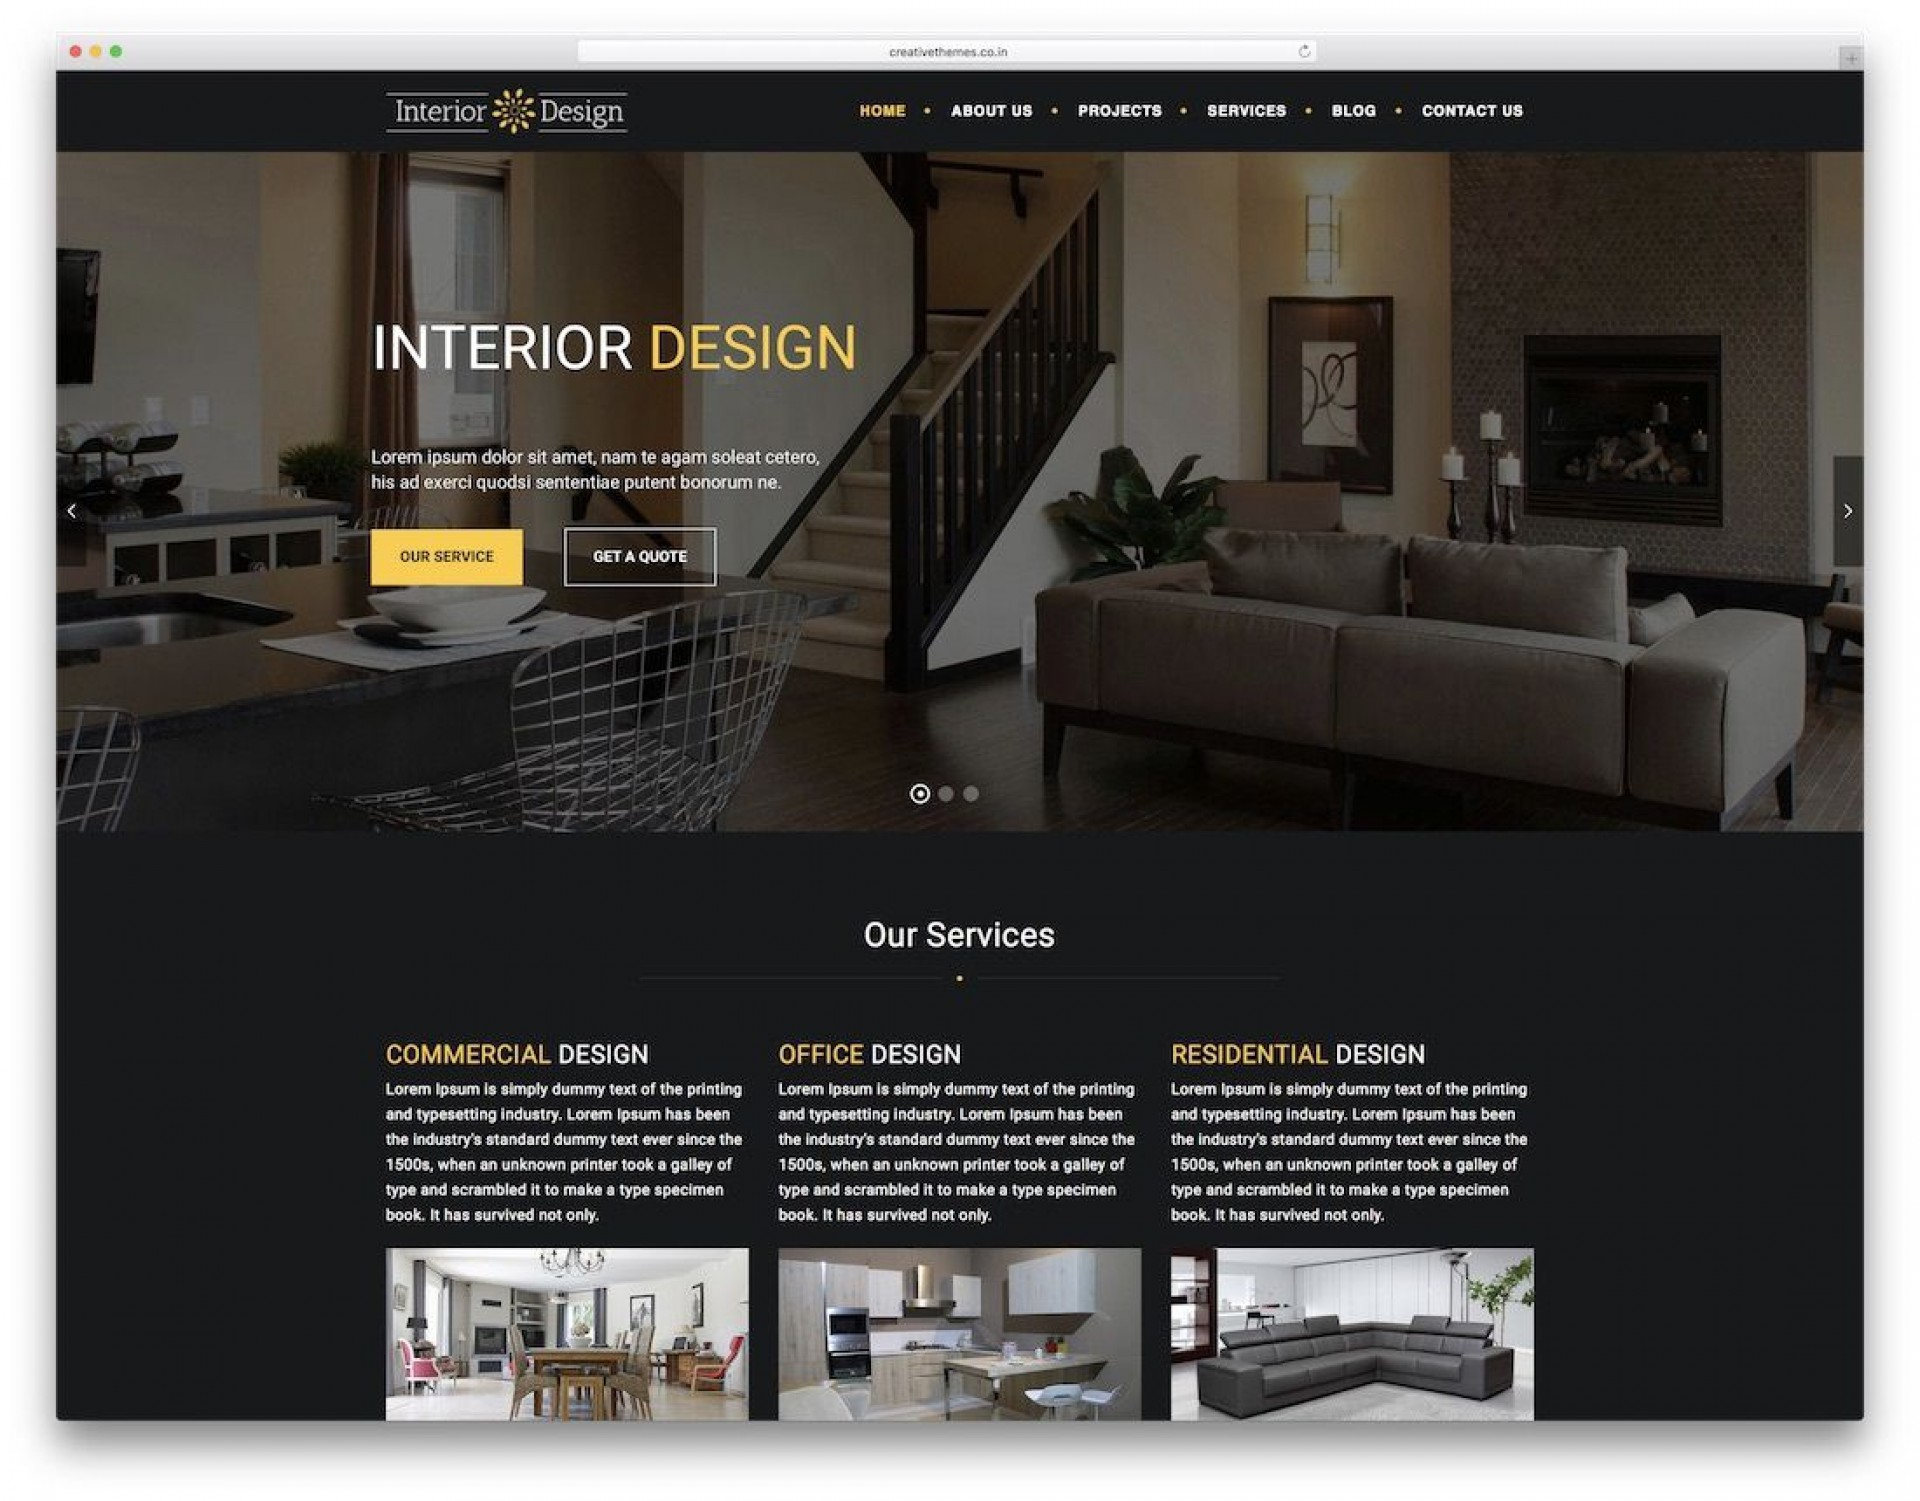 008 Top Interior Design Html Template Free Example  Download1920